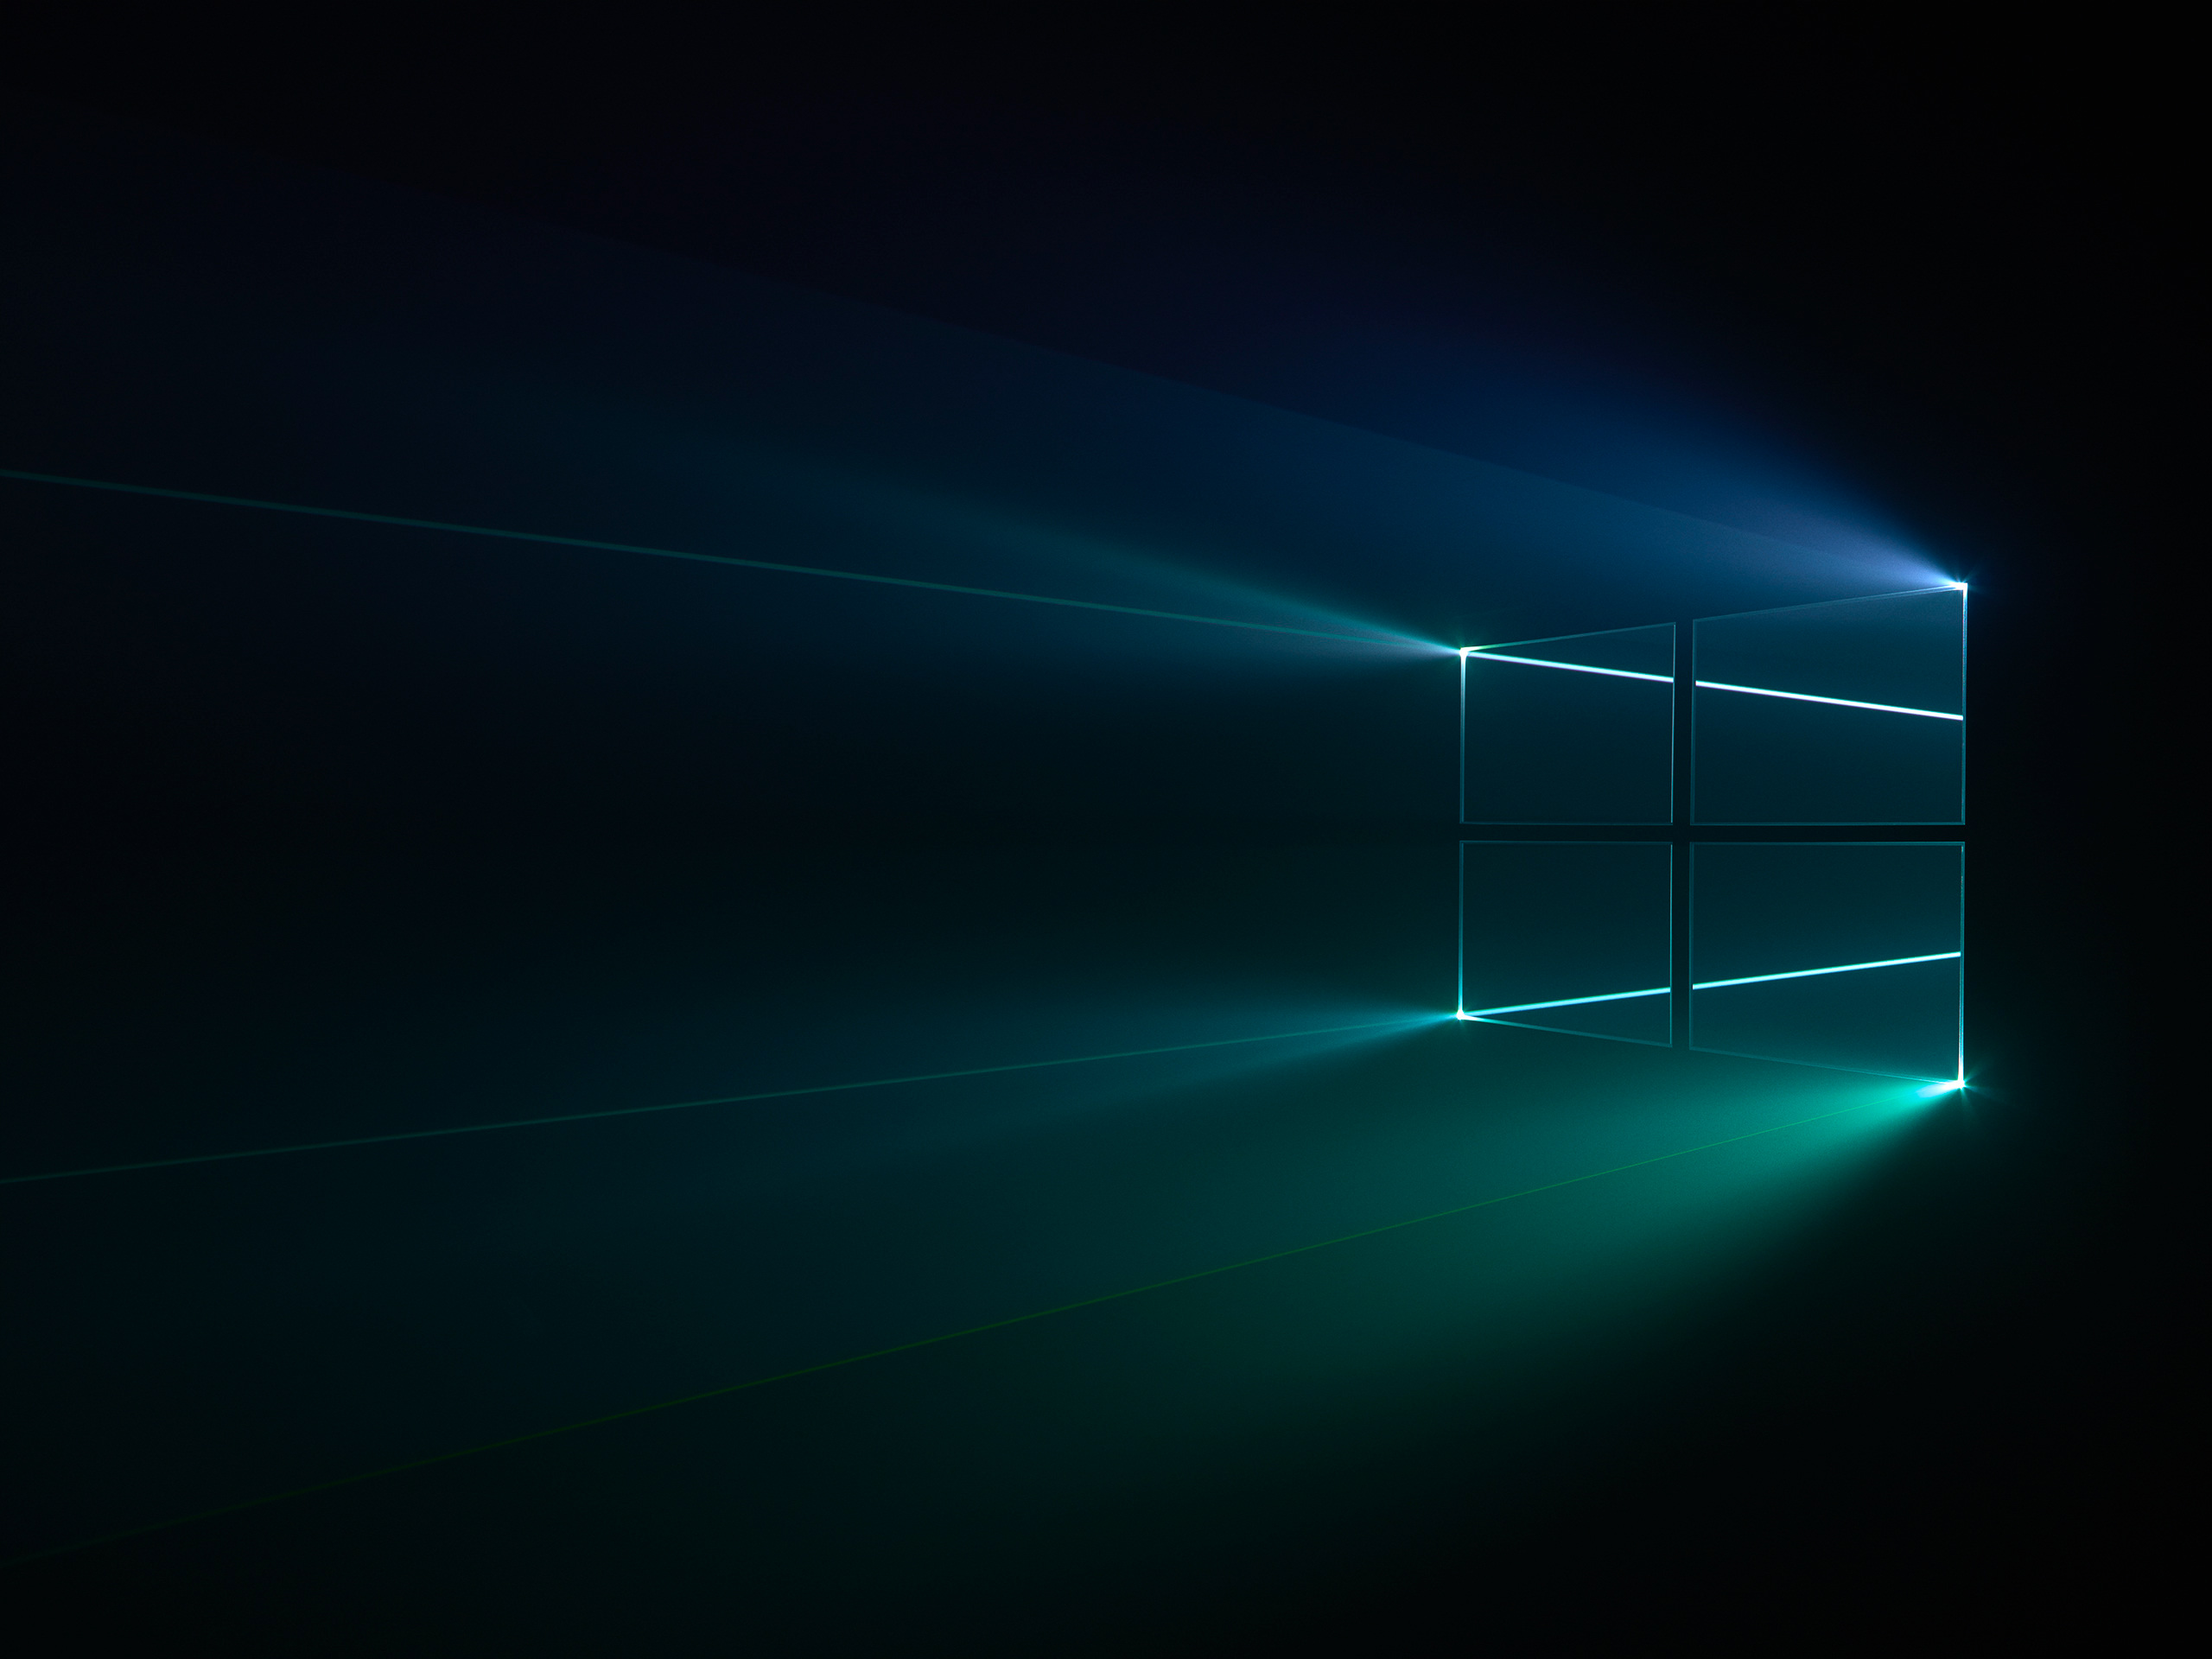 windows 10 backgrounds pictures